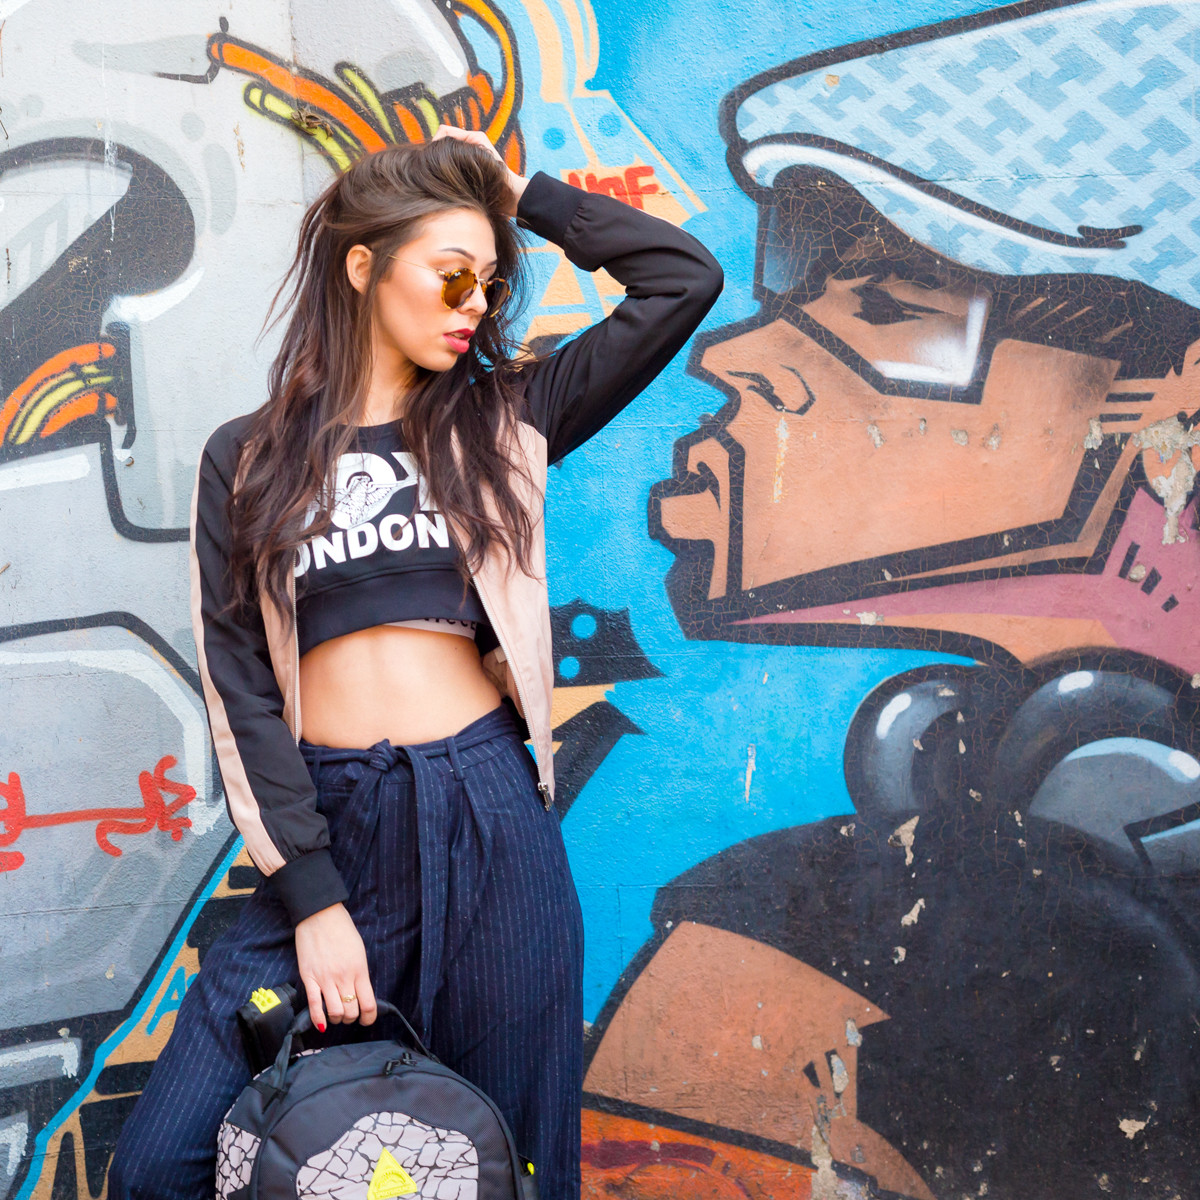 model posing in crop top next to graffiti